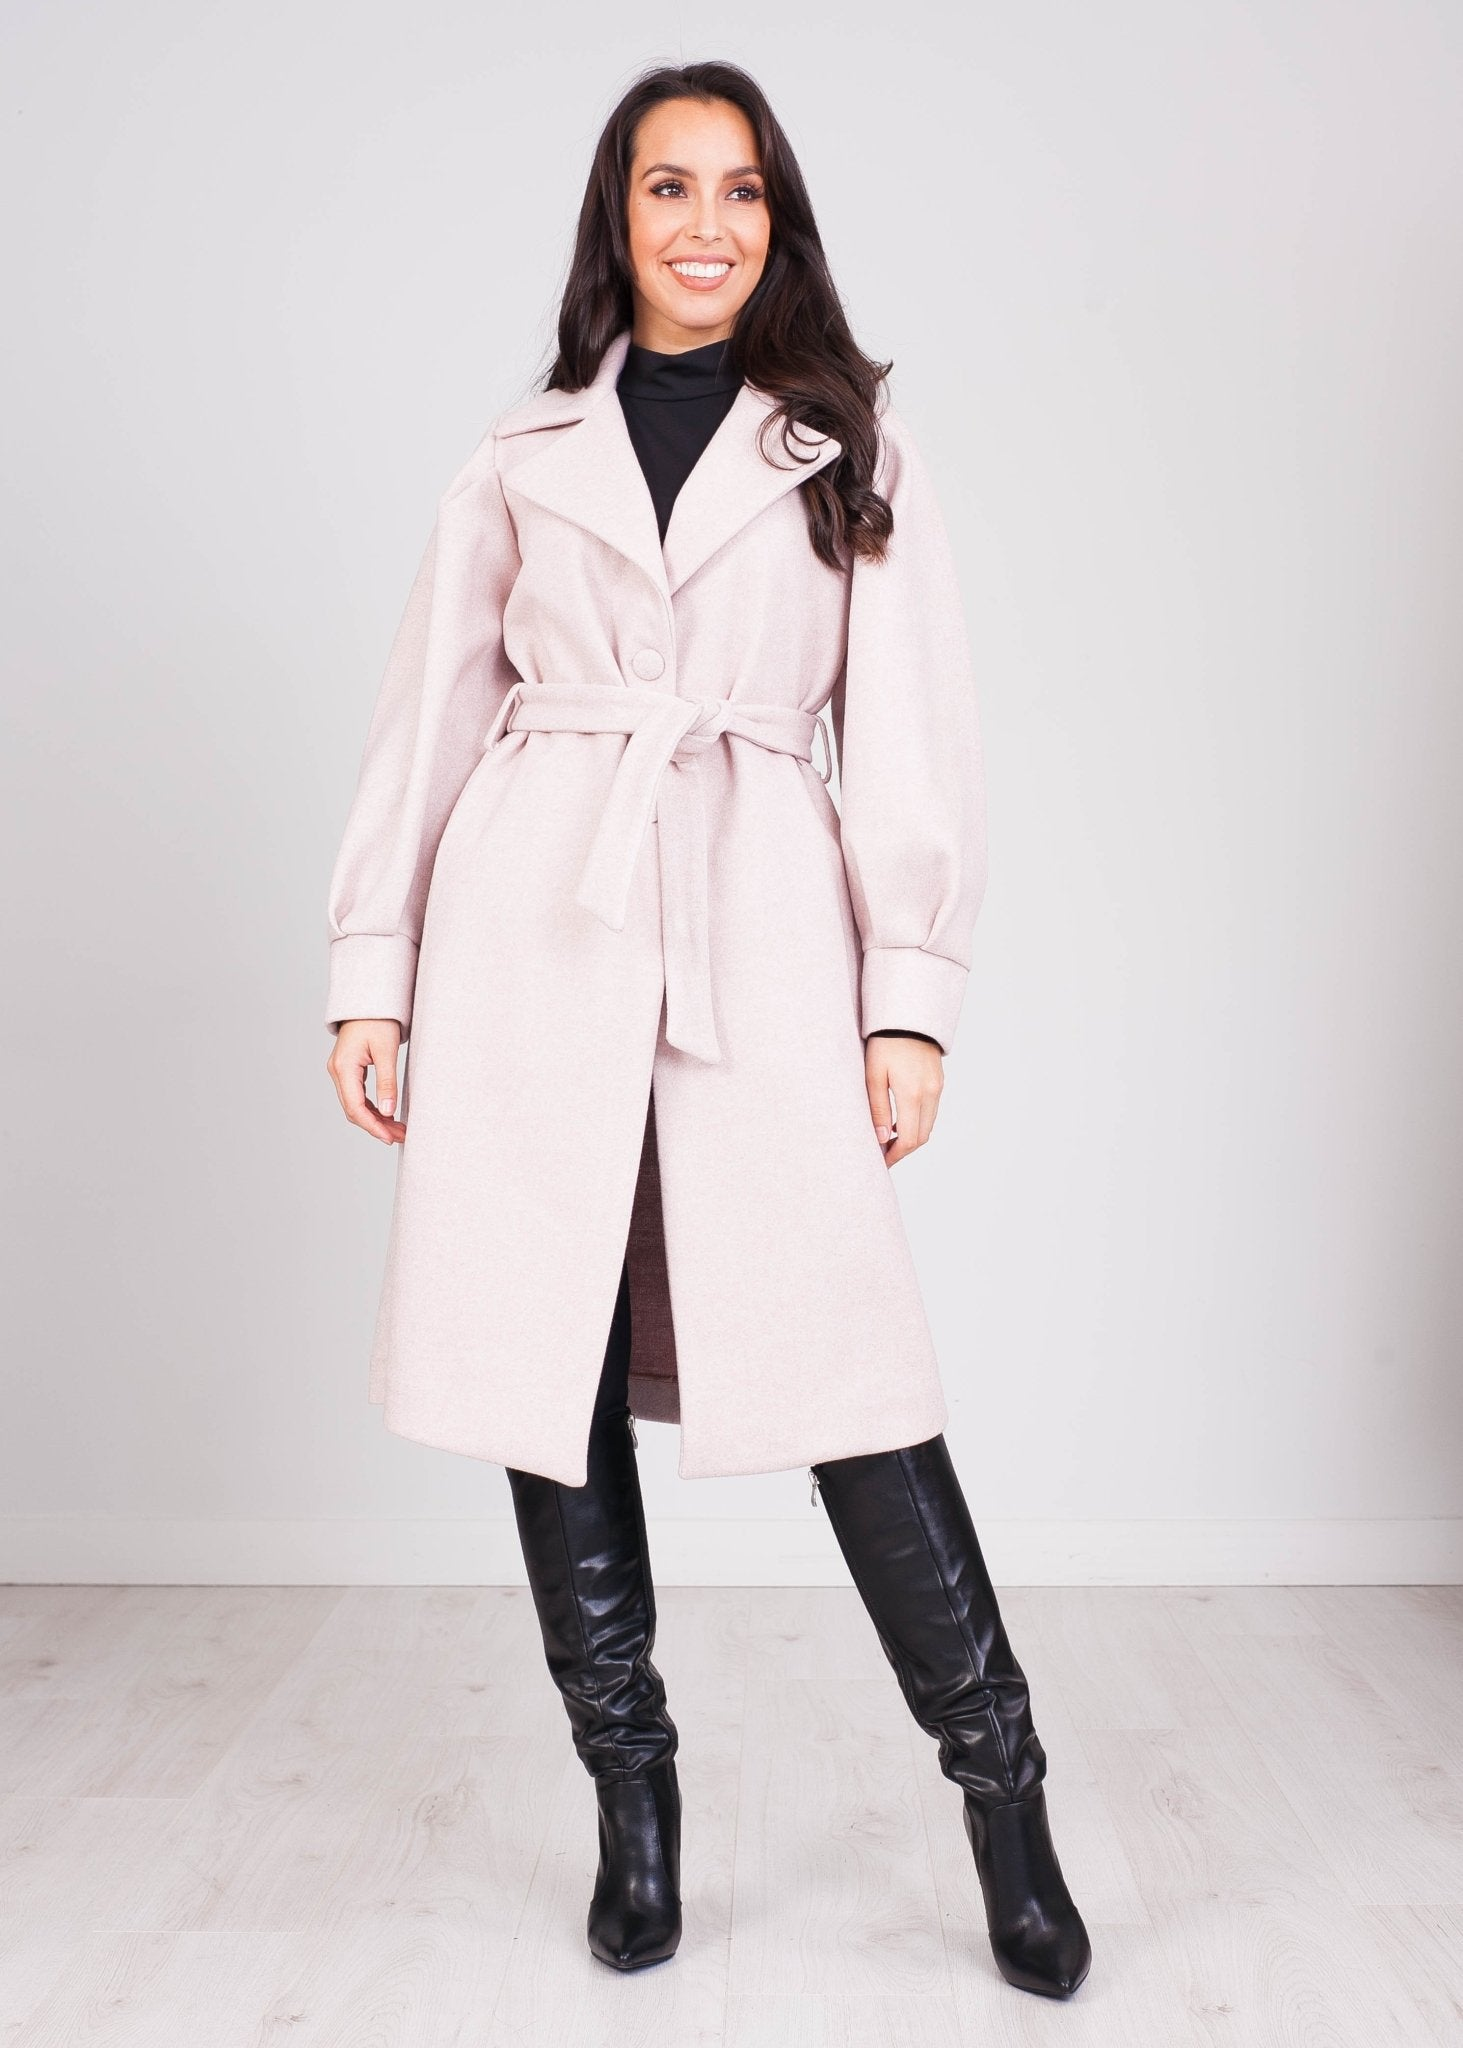 Heidi Blush Tie Waist Coat - The Walk in Wardrobe